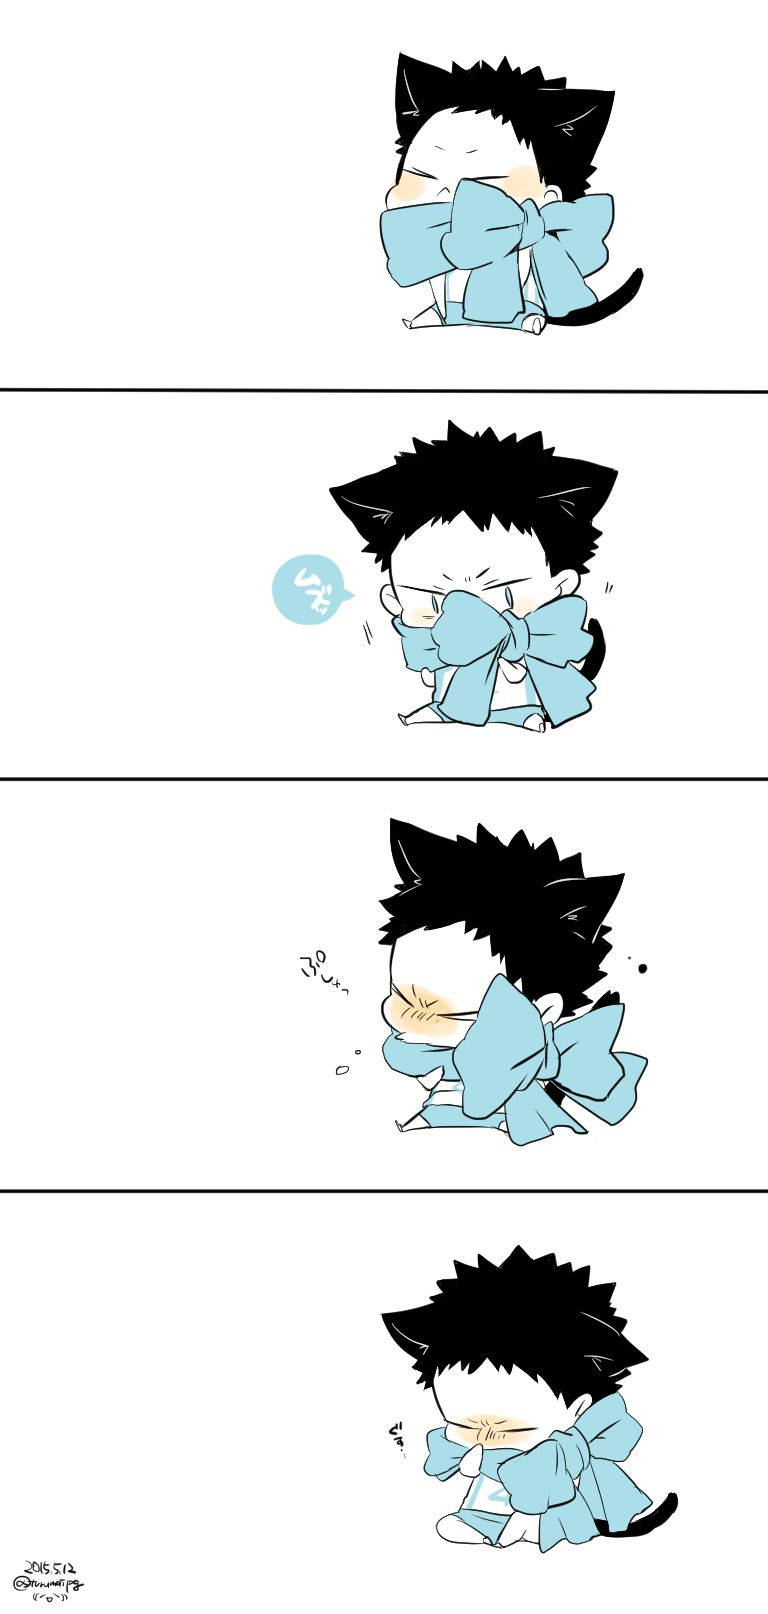 52bfc83a6 OMG! Cuteness Overload! *-* Too much cuteness! It's too cute for our ...